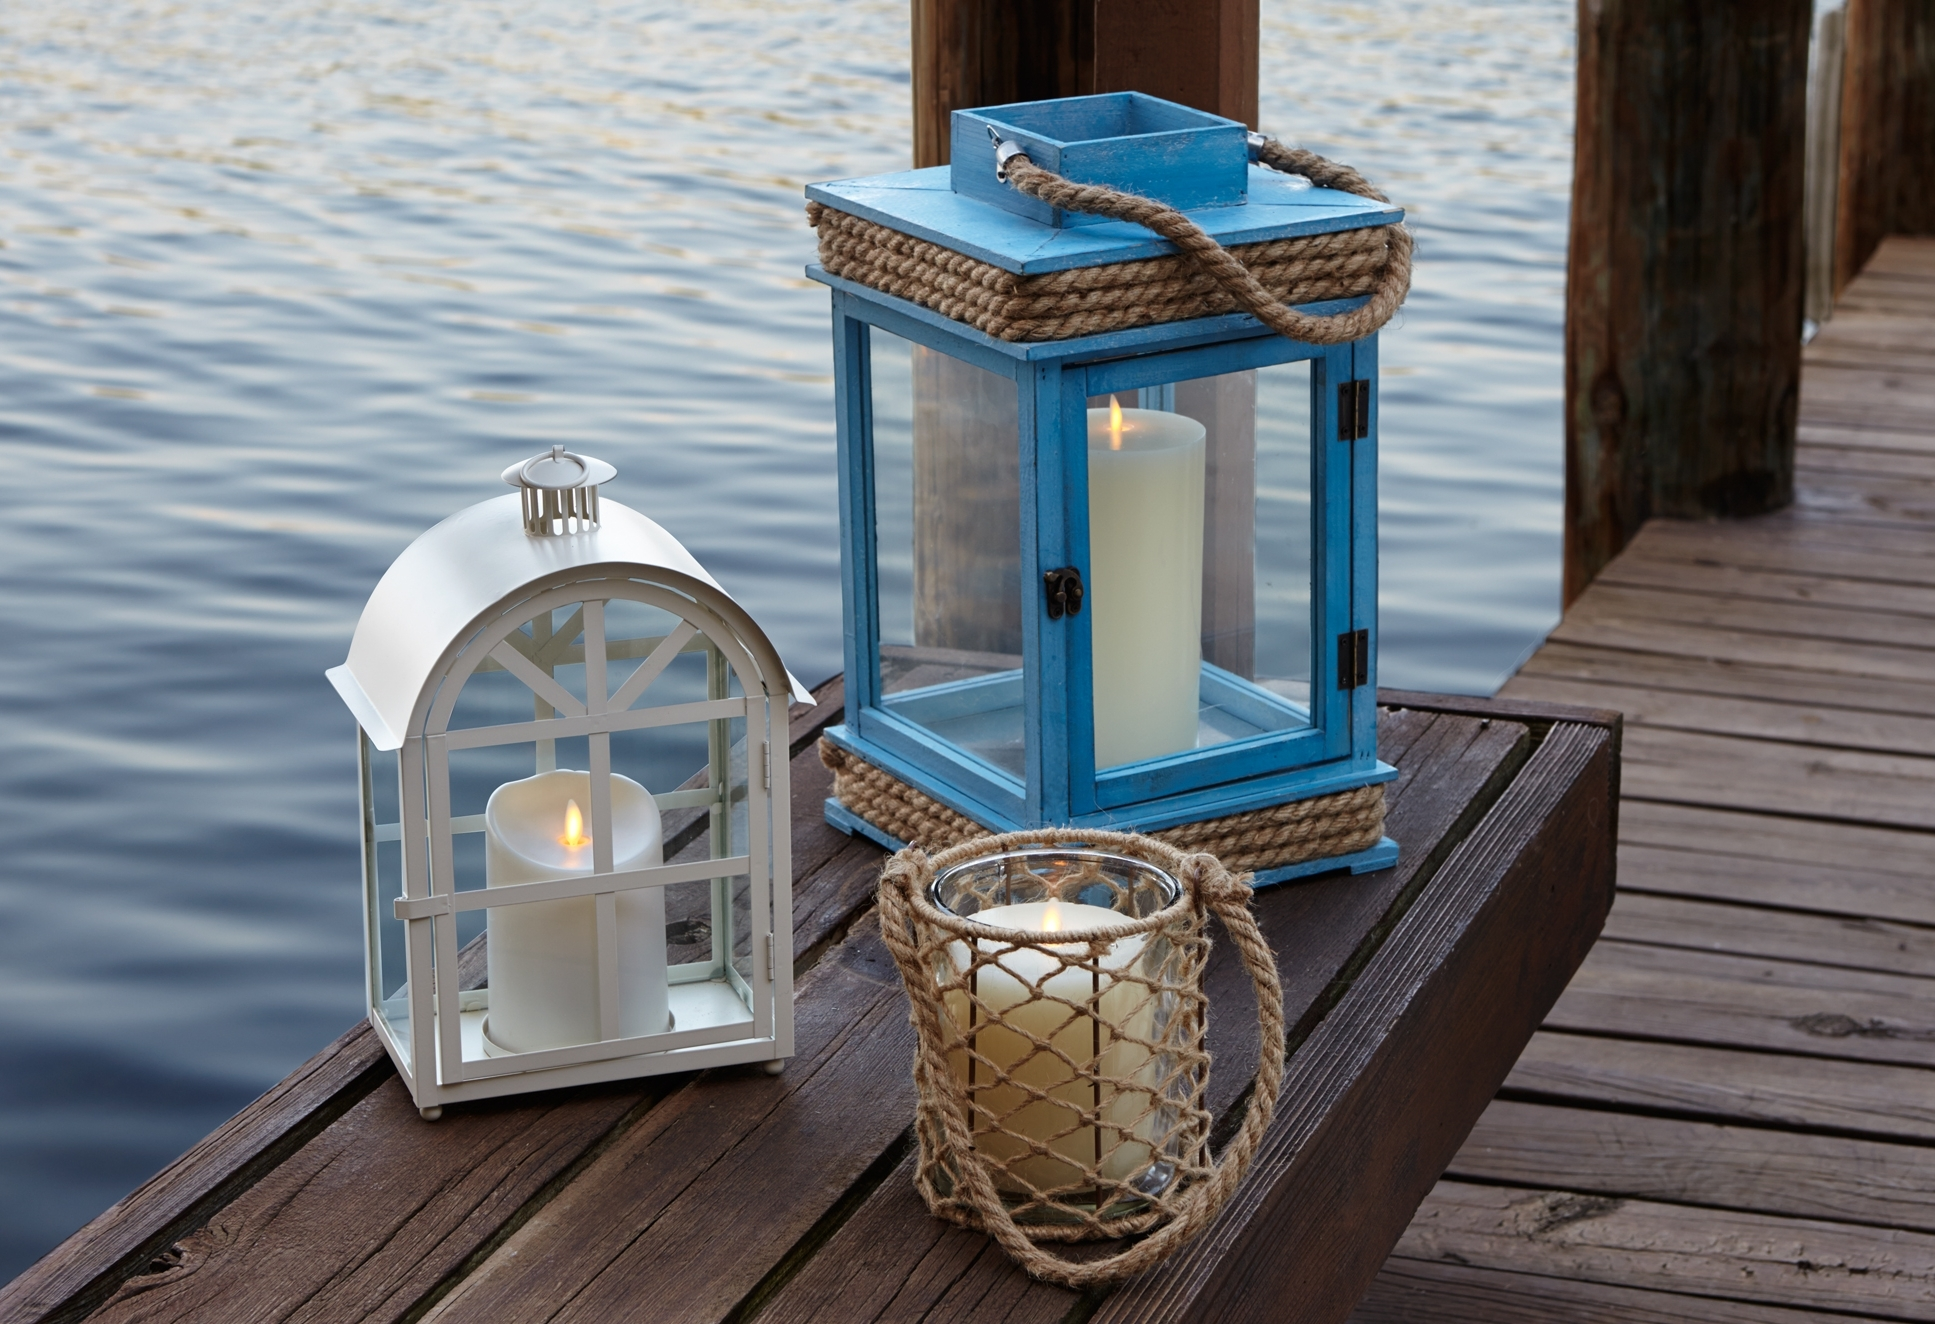 Luminara – Real Flame Effect Candles Throughout Most Up To Date Outdoor Luminara Lanterns (View 14 of 20)